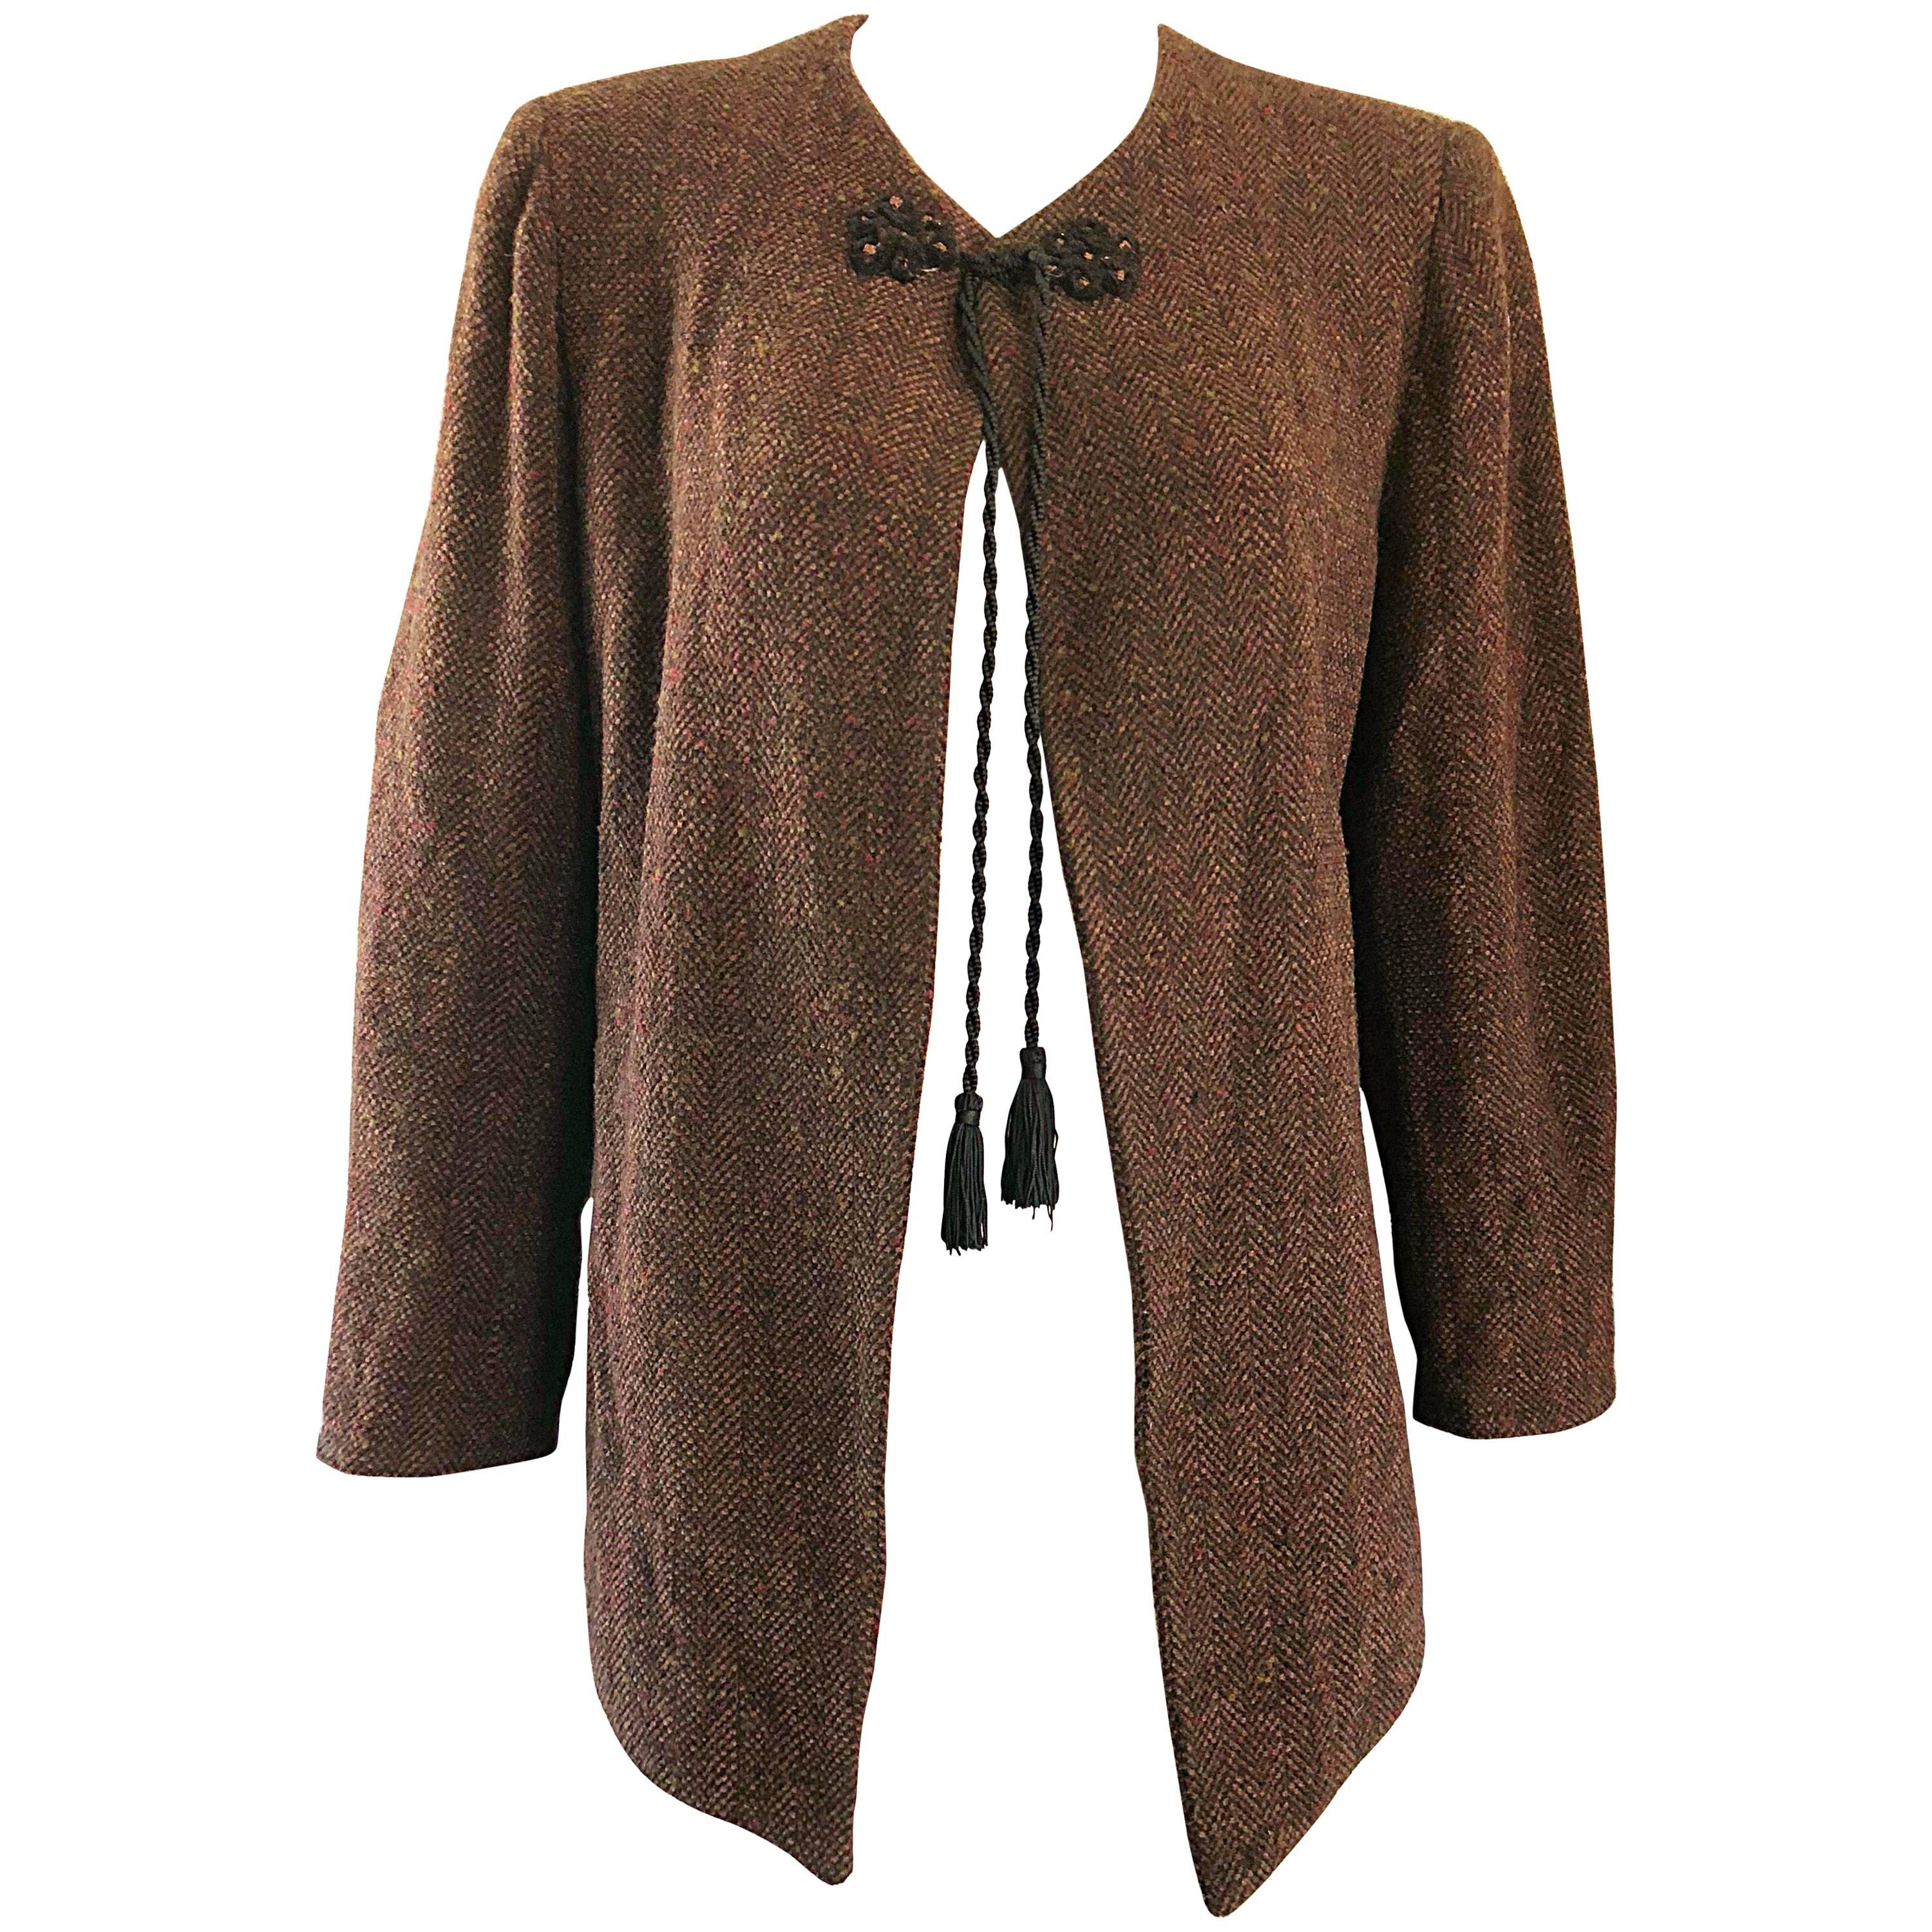 1990s Emanuel Ungaro Brown Wool Vintage 90s Tasseled Russian Swing Jacket